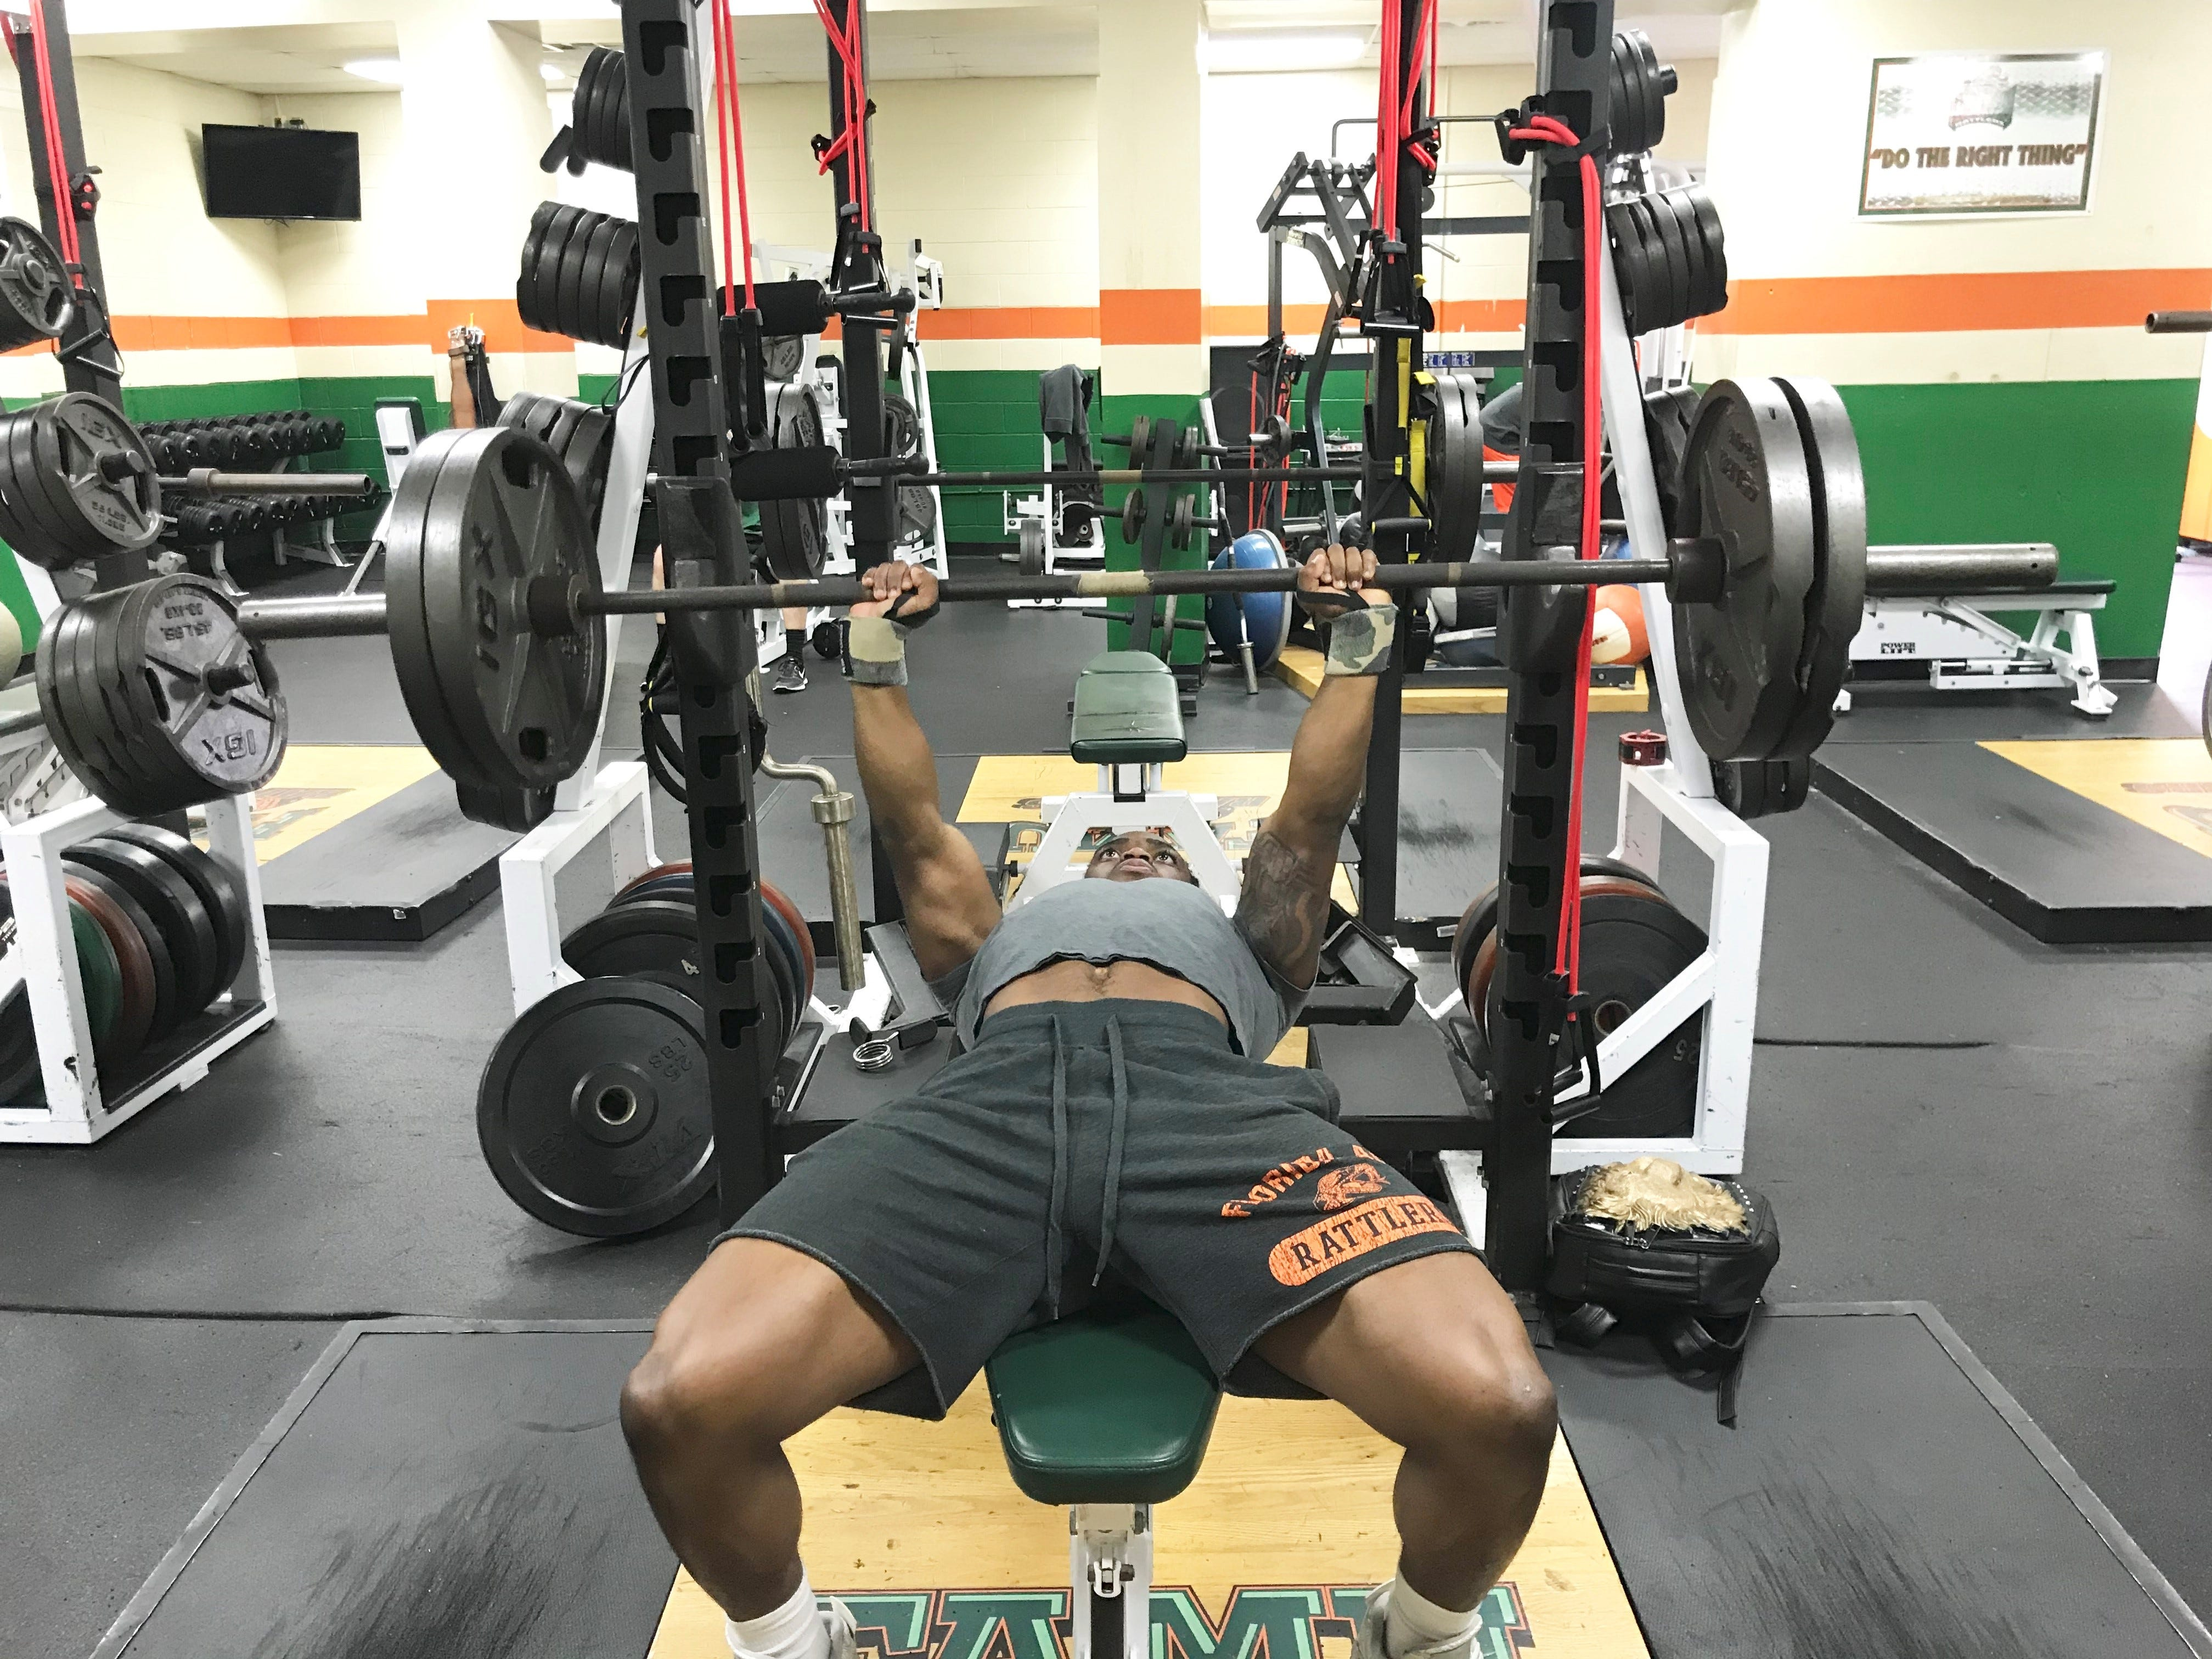 Running back Eddie Tillman trains for the 2019 season with a 225-pound bench press to begin his workout.